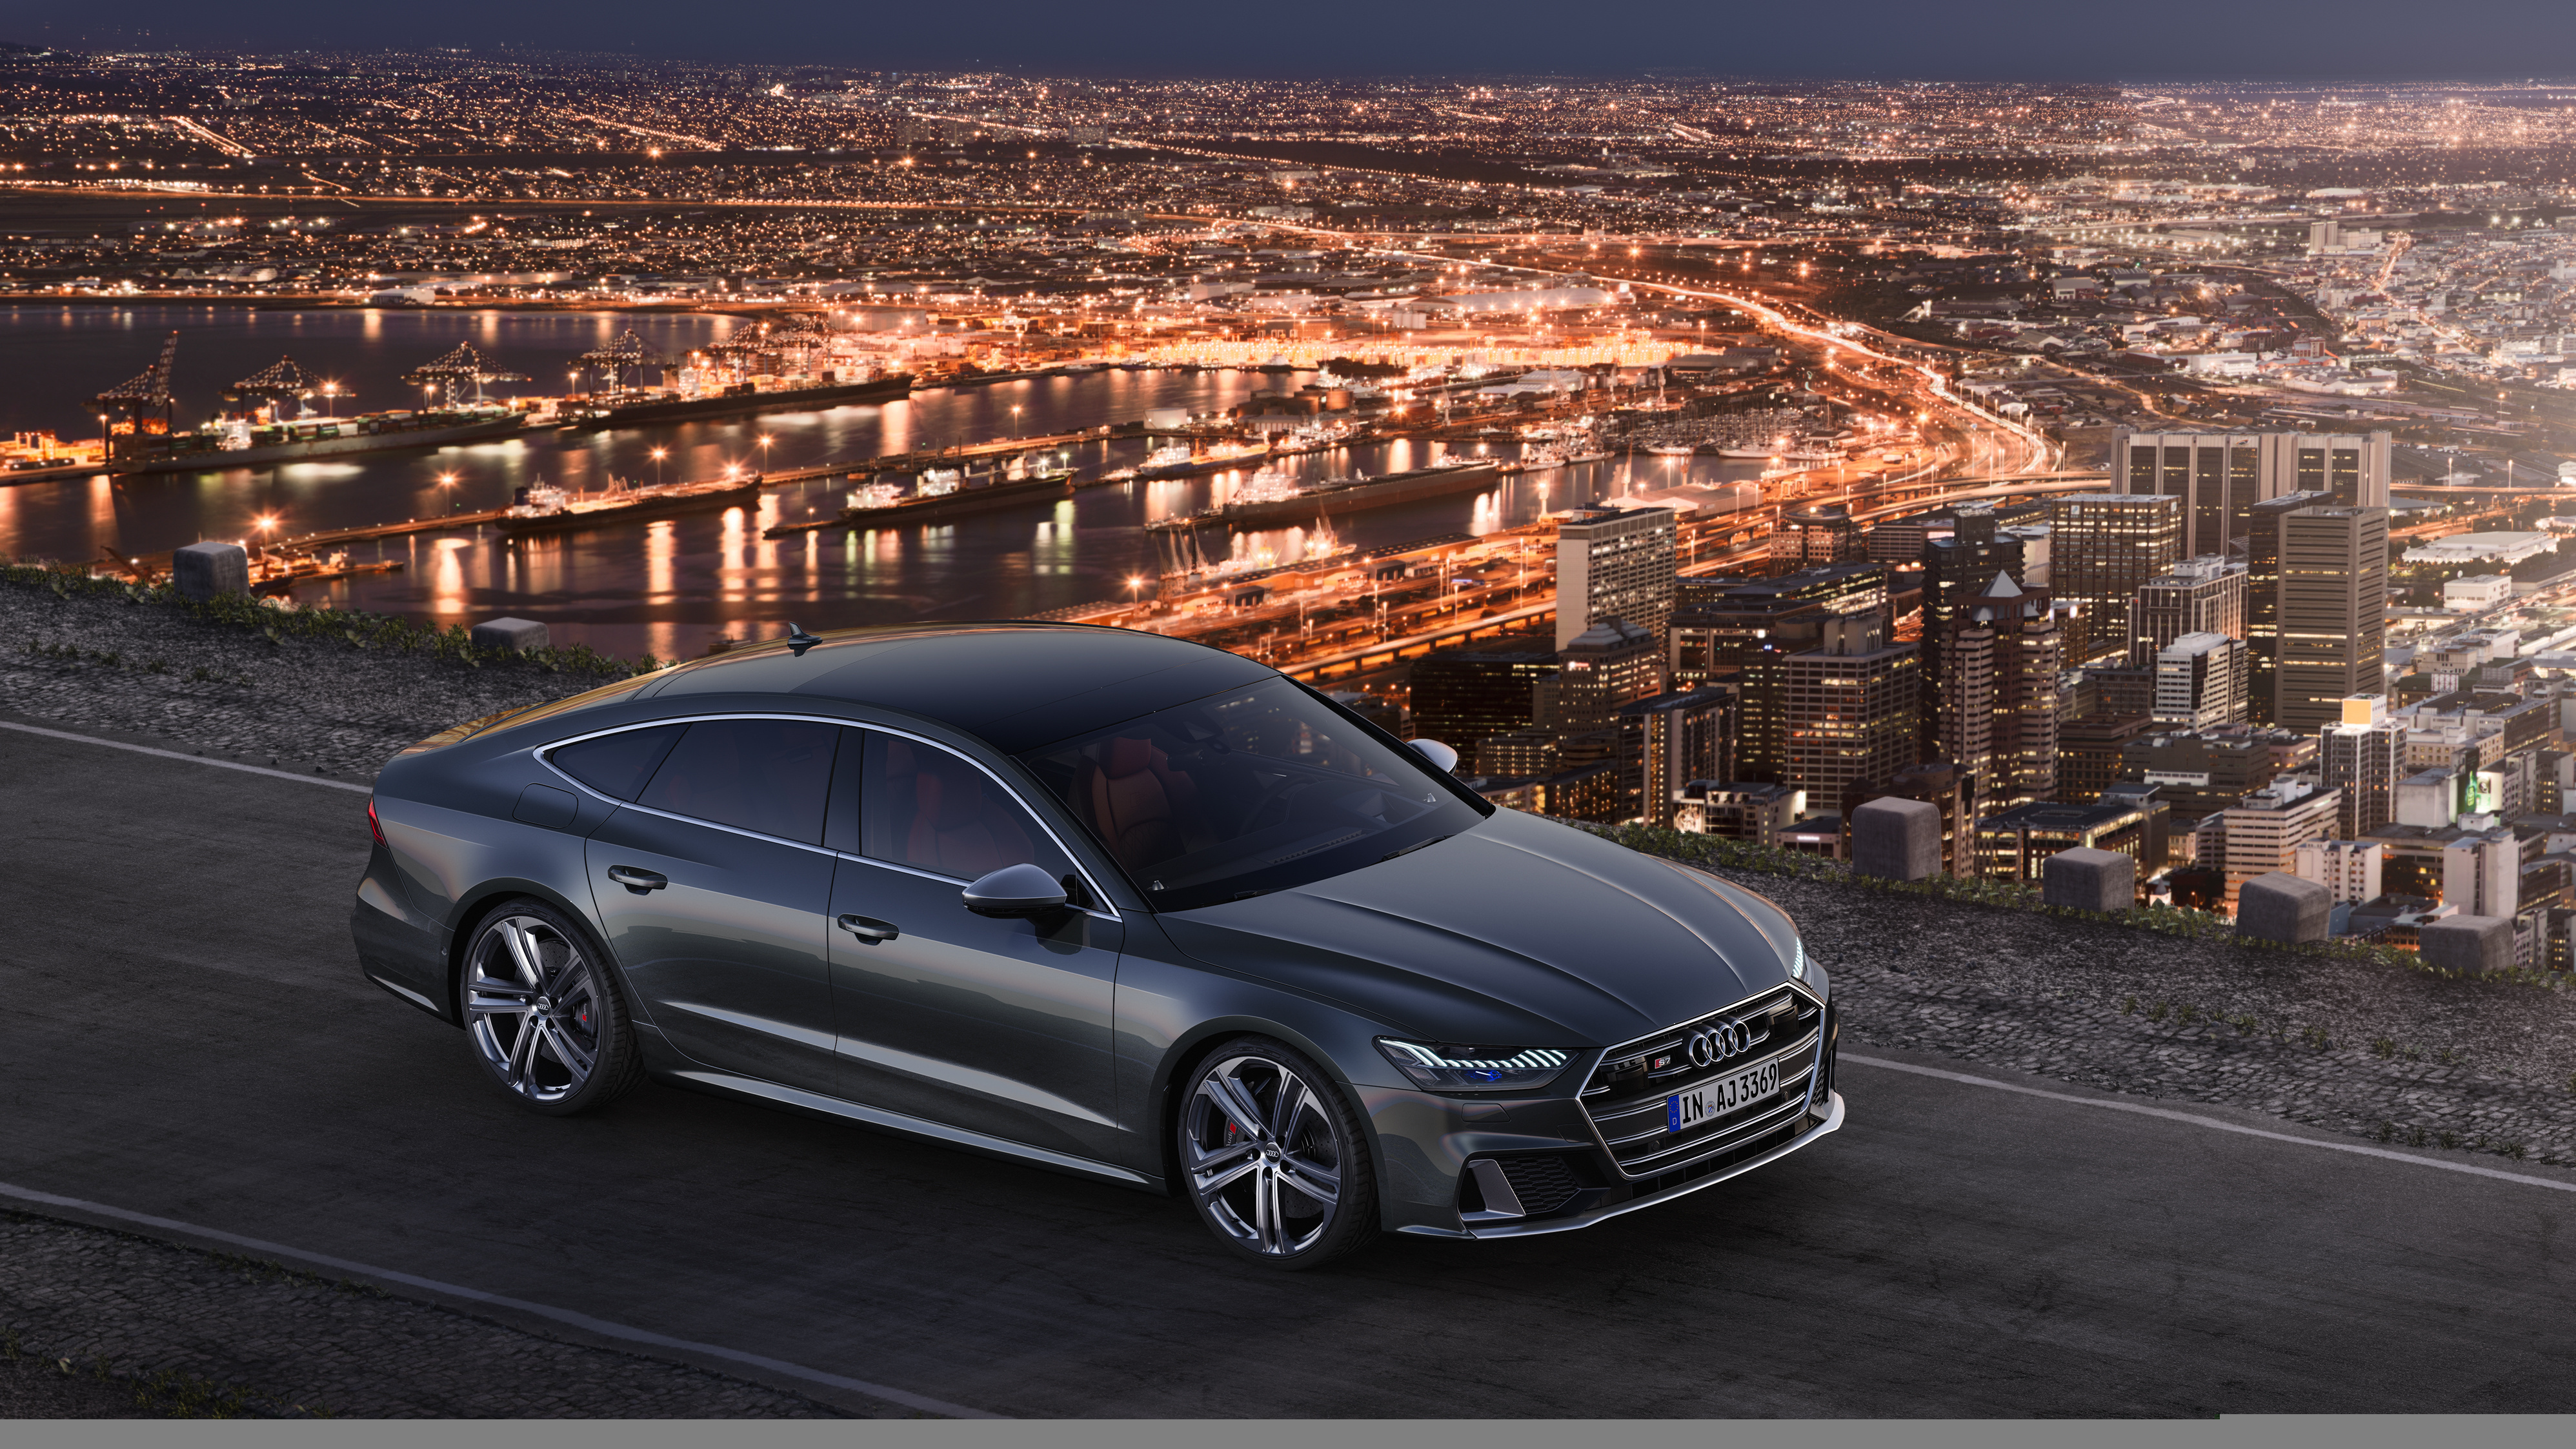 Wallpaper Of The Day: 2020 Audi S7 Sportback Pictures ...